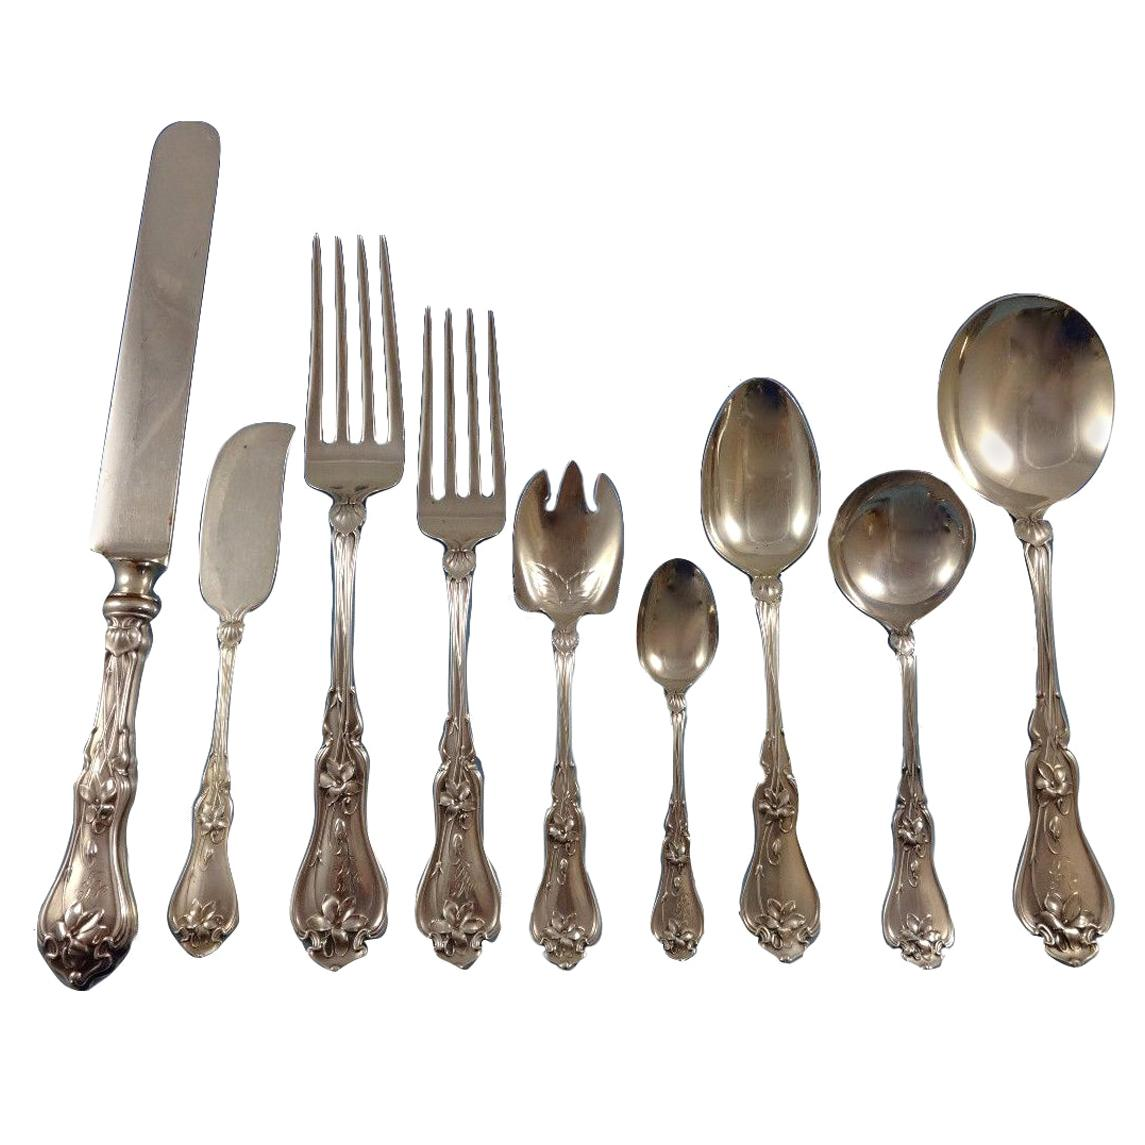 S LOUIS XV -MONO WHITING STERLING LUNCH KNIVE